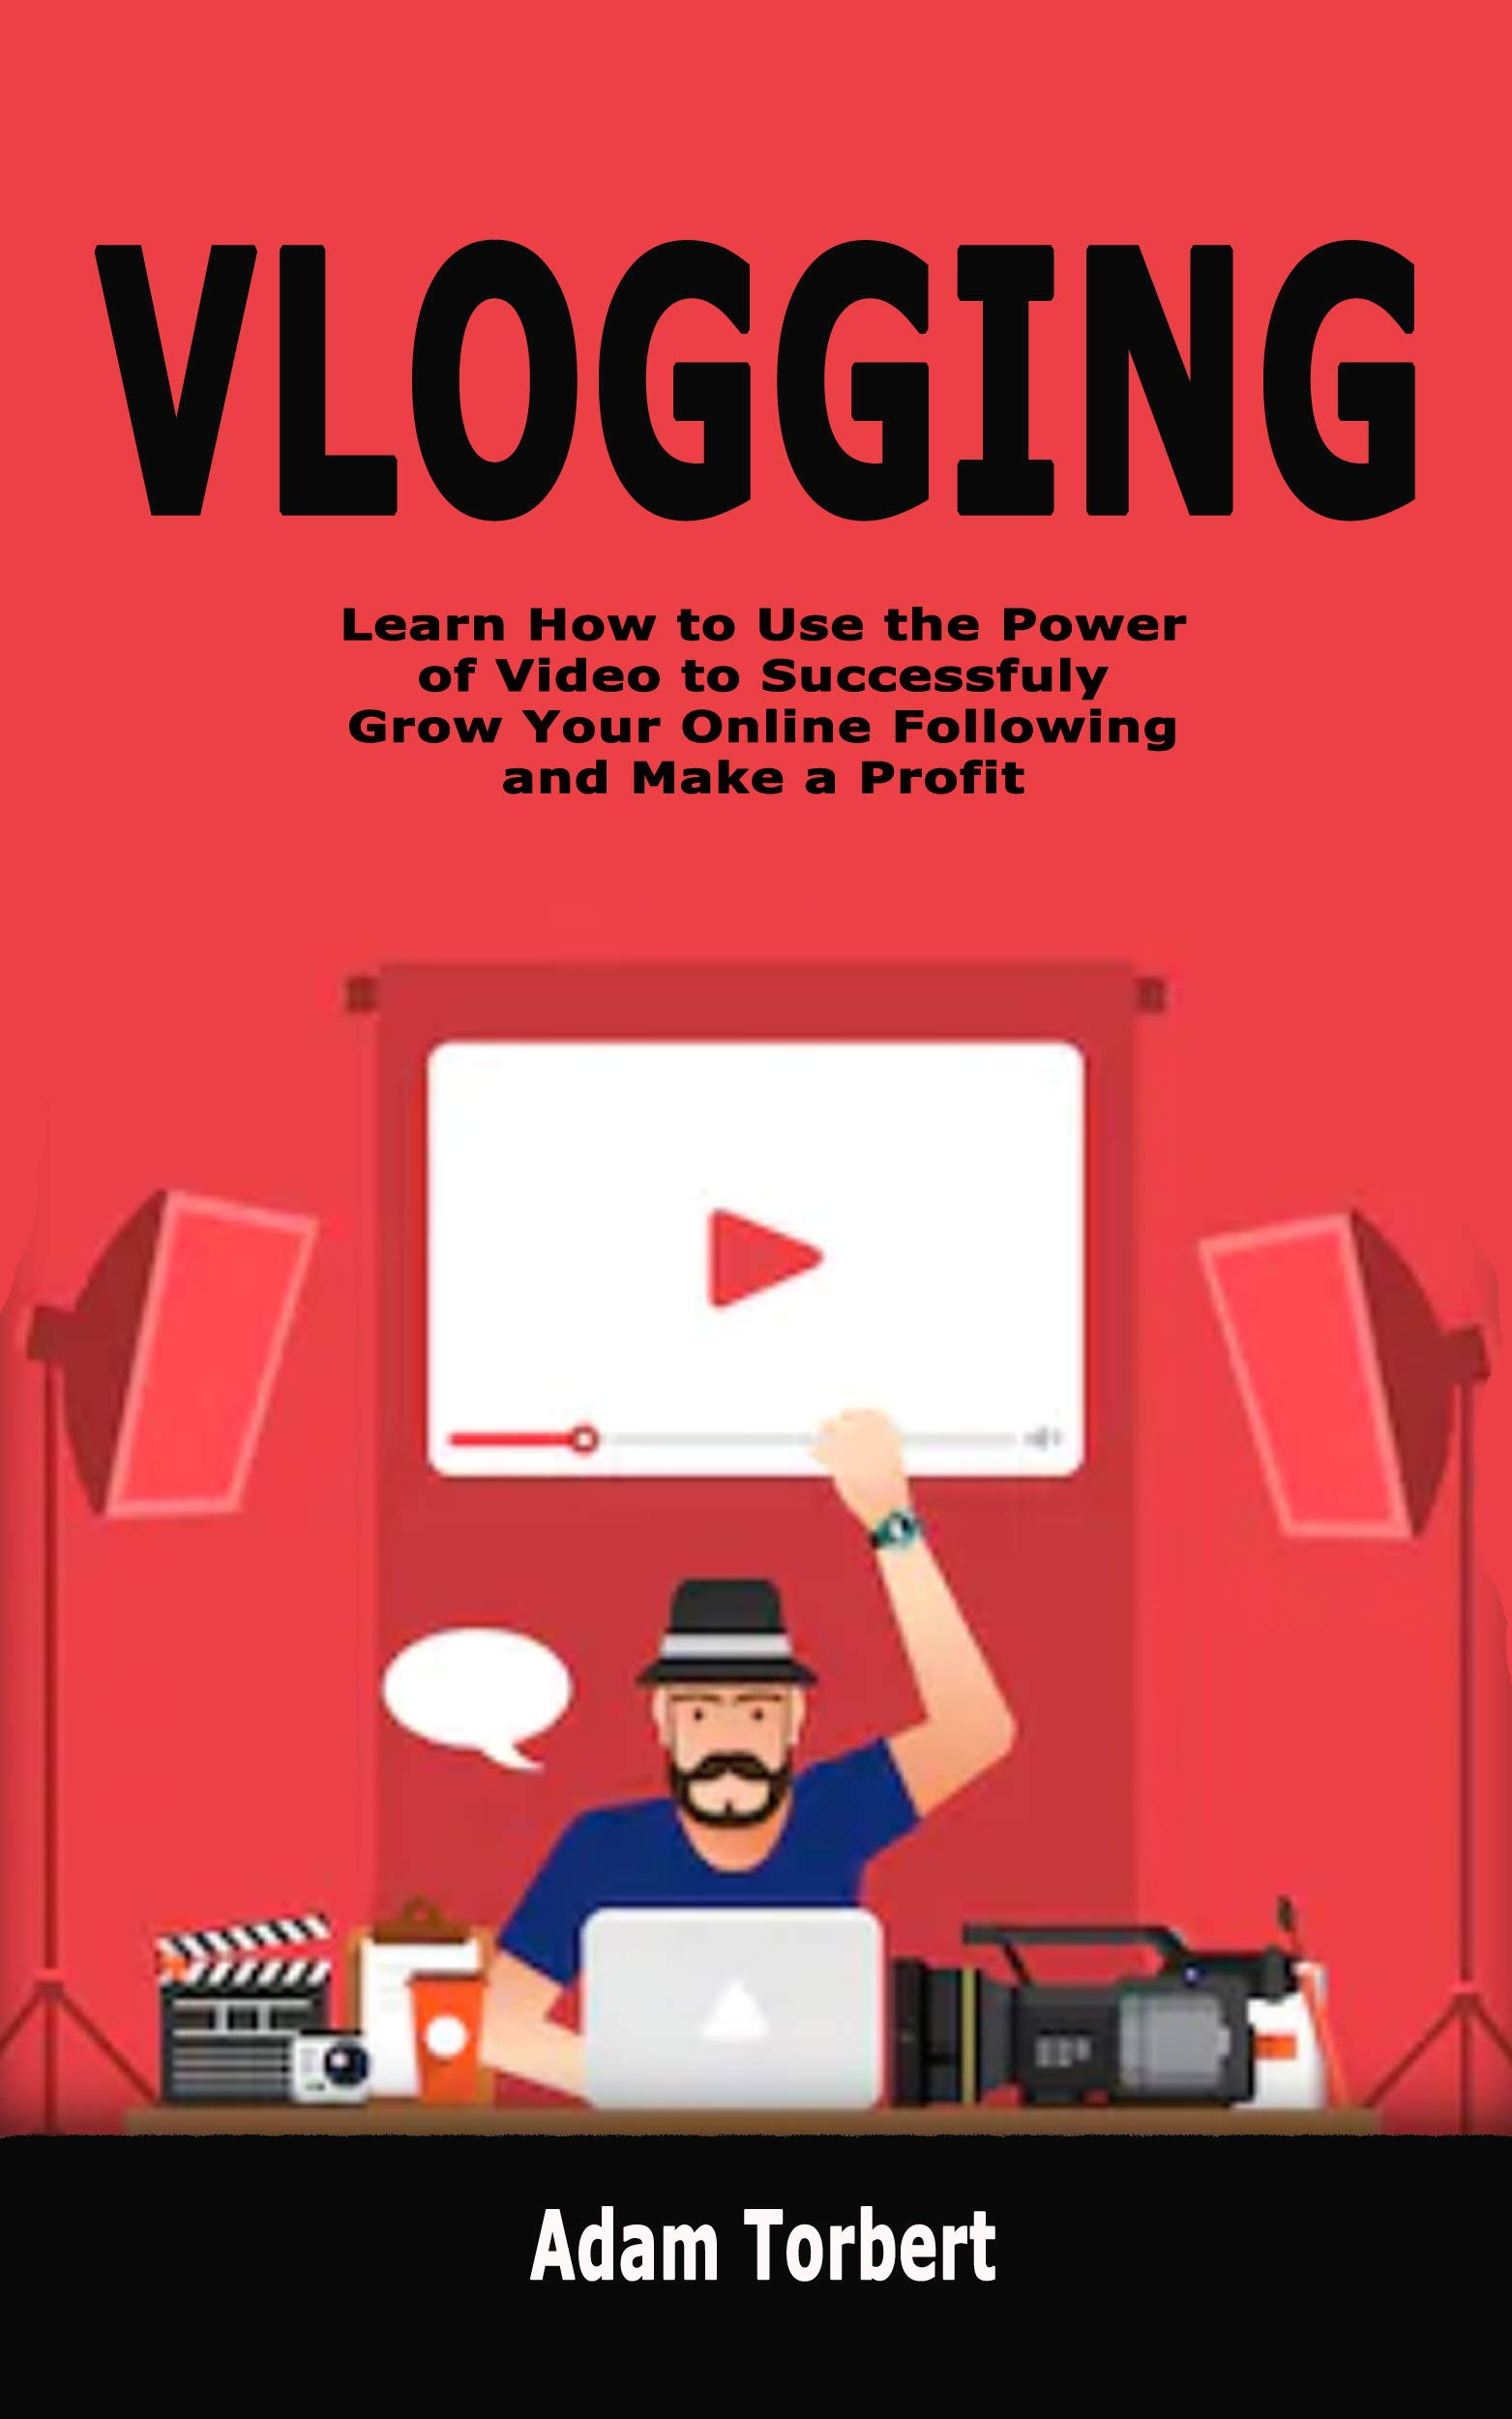 Vlogging: Learn How to Use the Power of Video to Successfuly Grow Your Online Following and Make a Profit